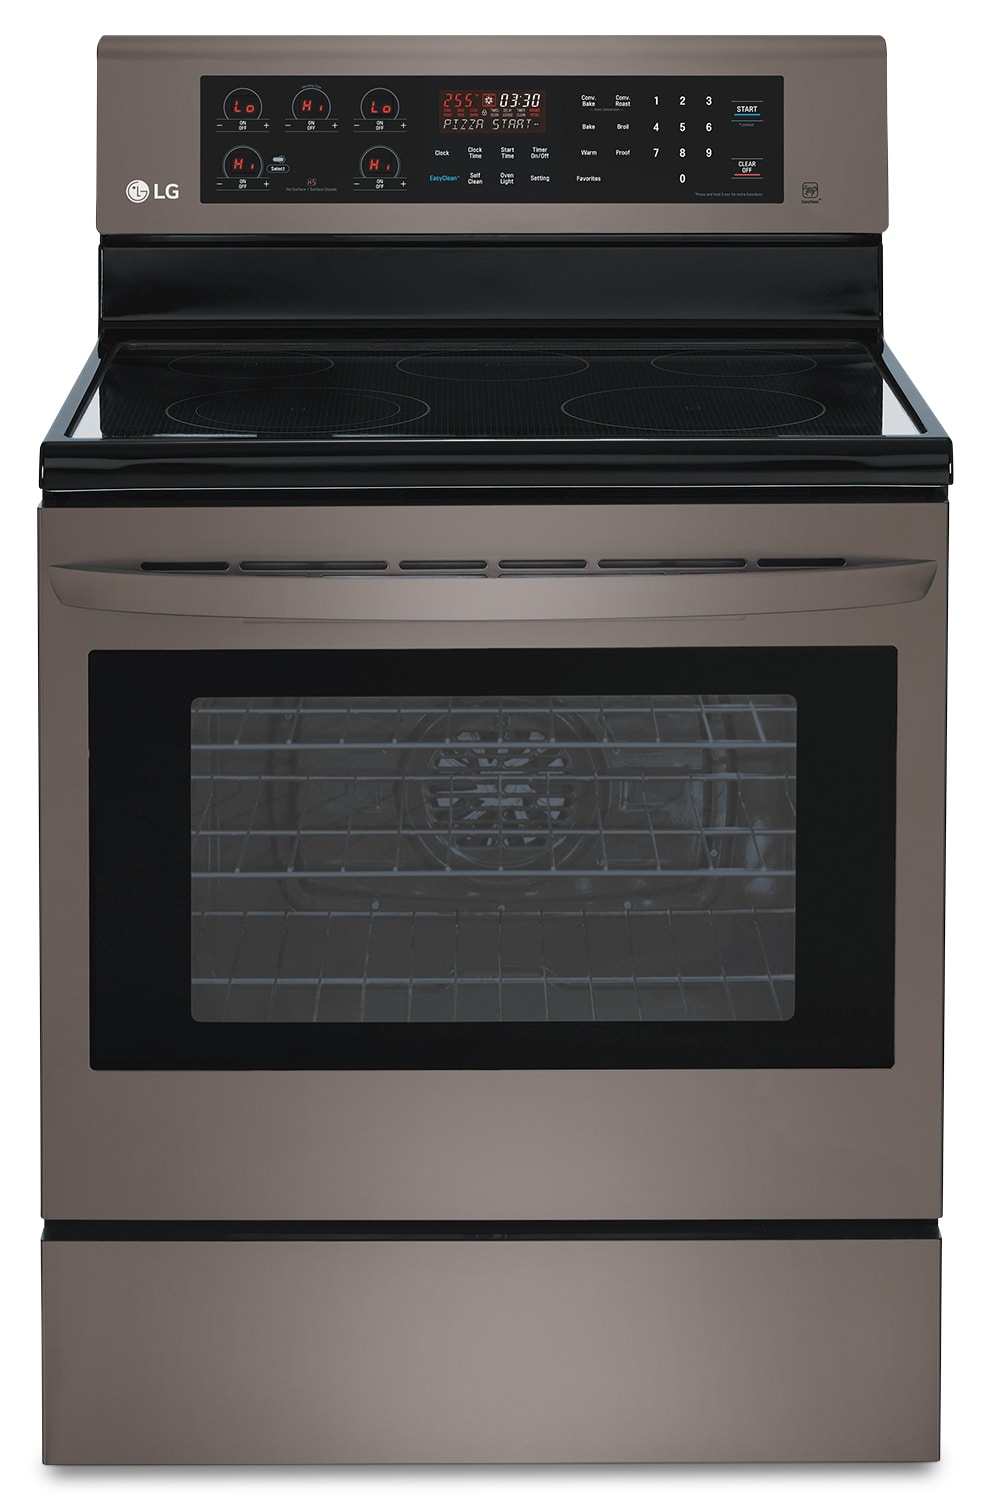 Cooking Products - LG 6.3 Cu. Ft. Freestanding Electric Range – Black Stainless Steel LRE6383BD